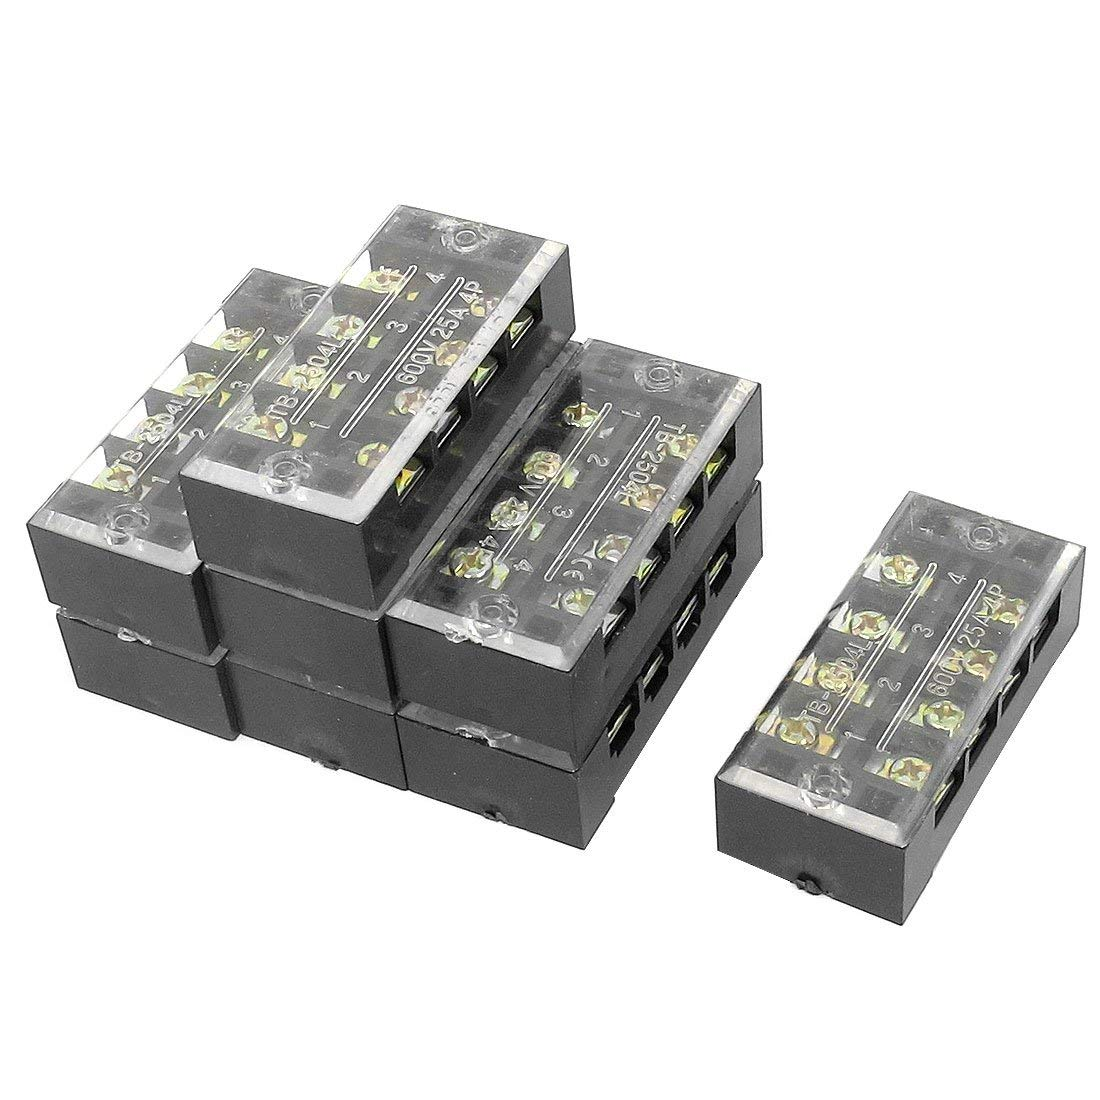 Aexit 8 Pcs 2 Row 4 Position Screw Terminal Block Strip Connector 600V 25A